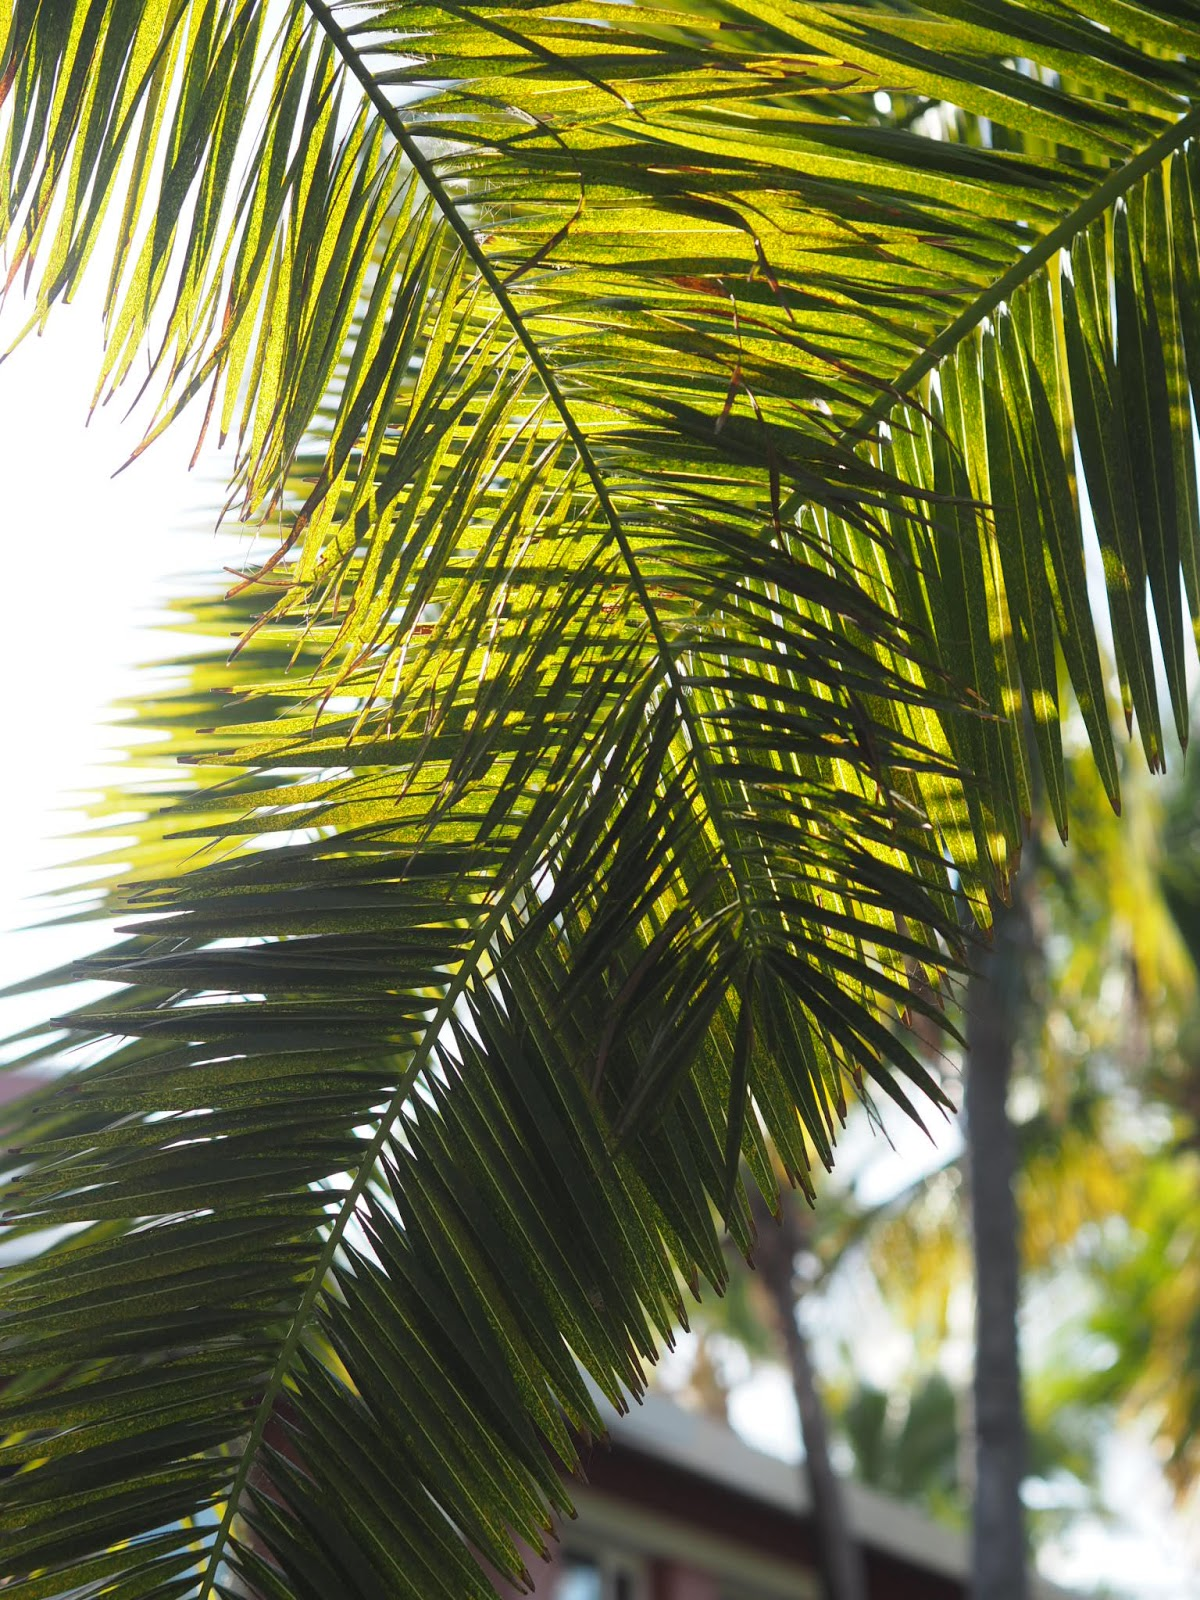 Crossed Palm Leaves with Sun behind creating shadows